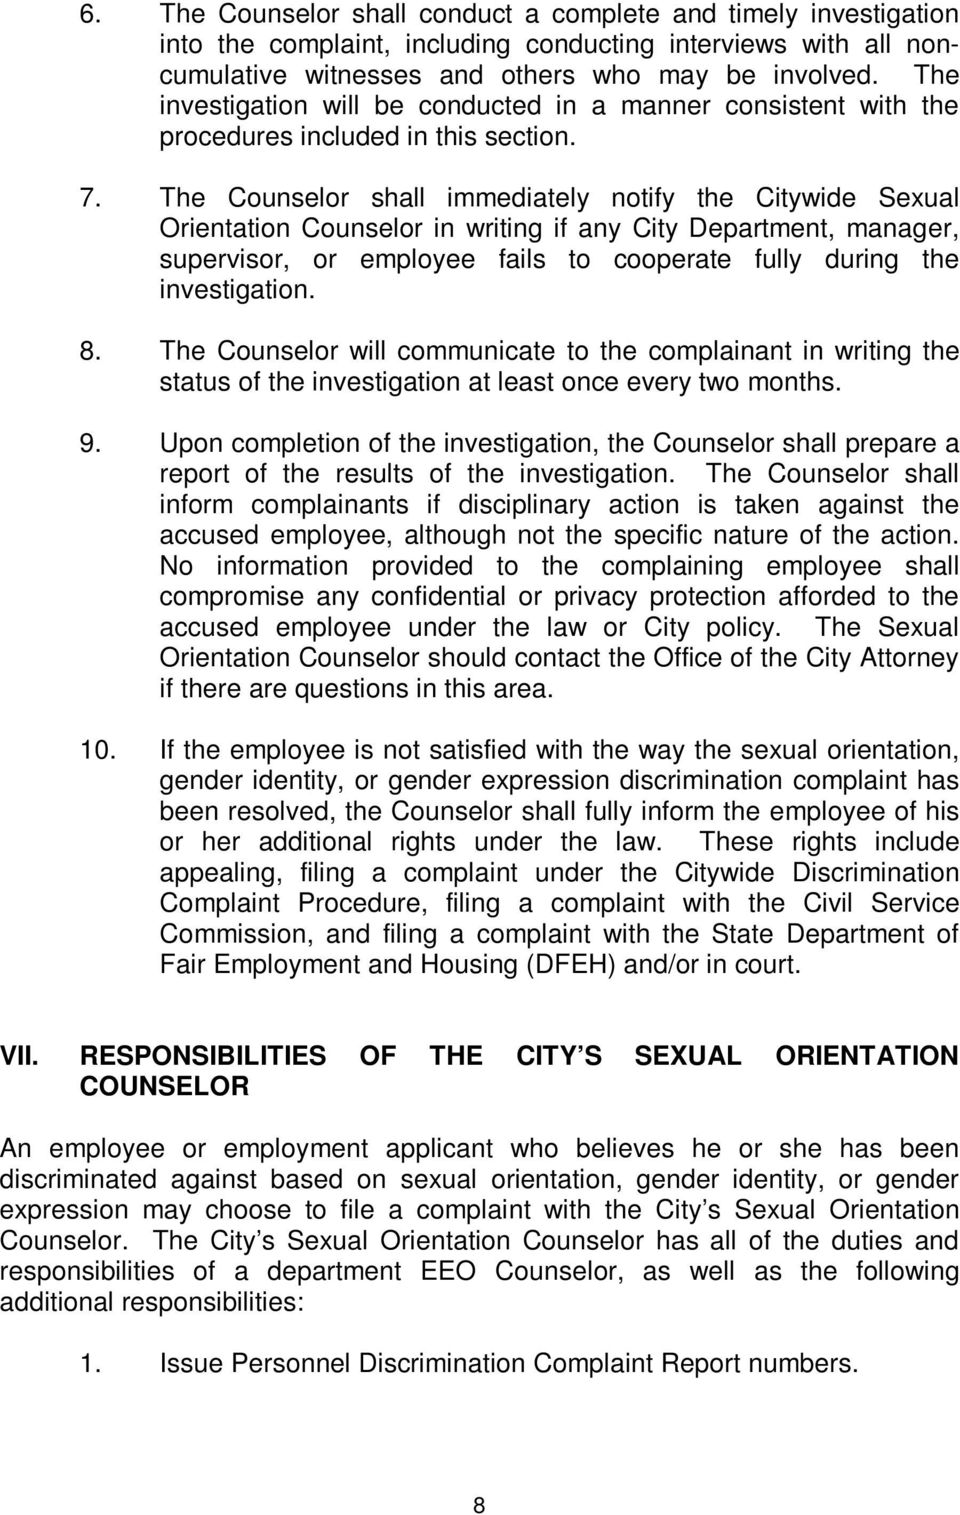 The Counselor shall immediately notify the Citywide Sexual Orientation Counselor in writing if any City Department, manager, supervisor, or employee fails to cooperate fully during the investigation.